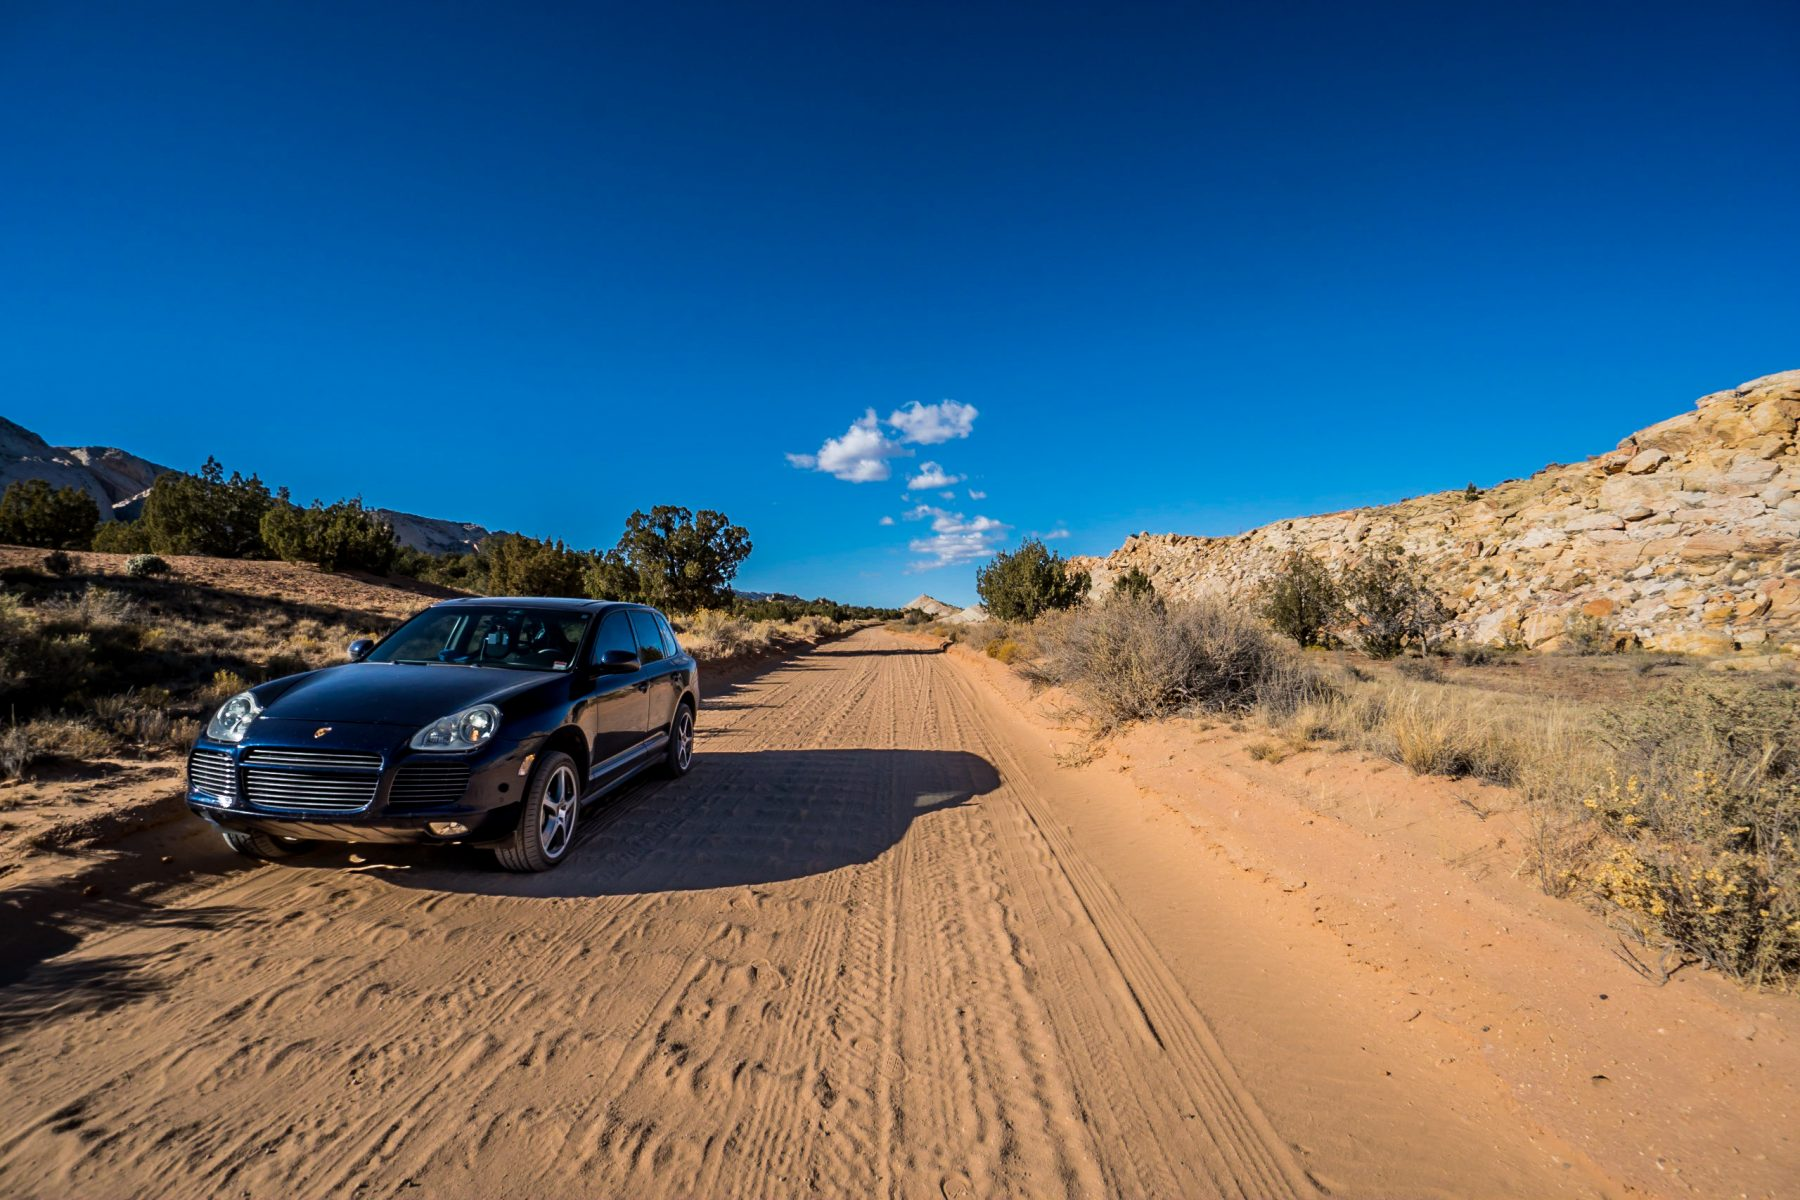 At Capitol Reef National Park, the rangers told me to drive the length of the park on a rough dirt road, and explore the Waterpocket Fold and surrounding landscape.